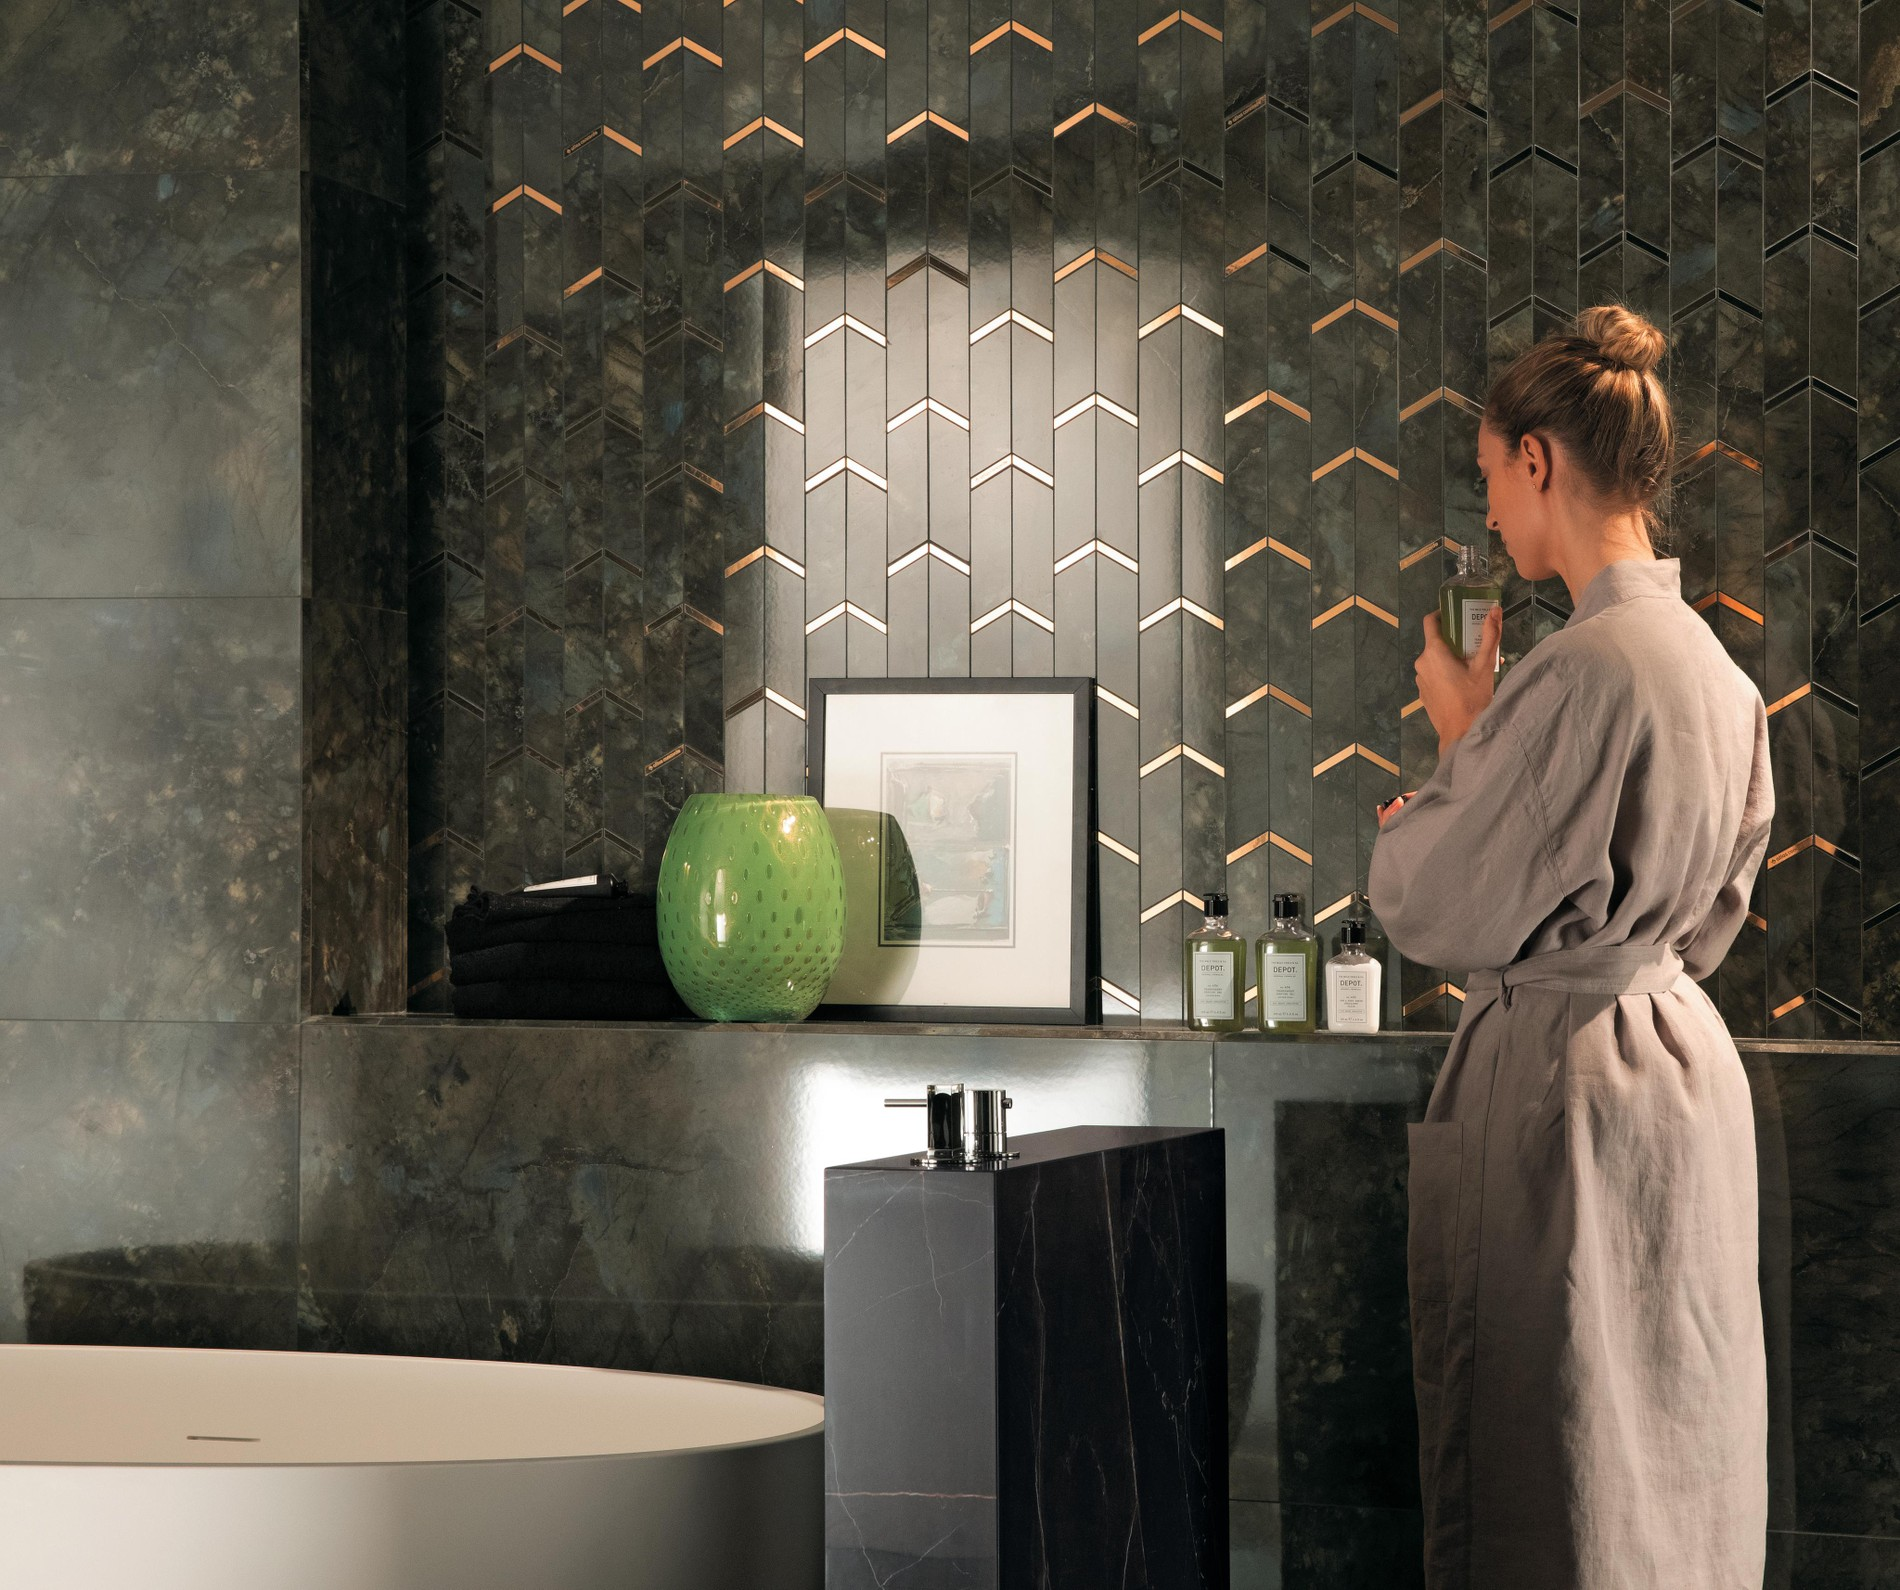 Ceramic tiles and hygiene: an inseparable combination